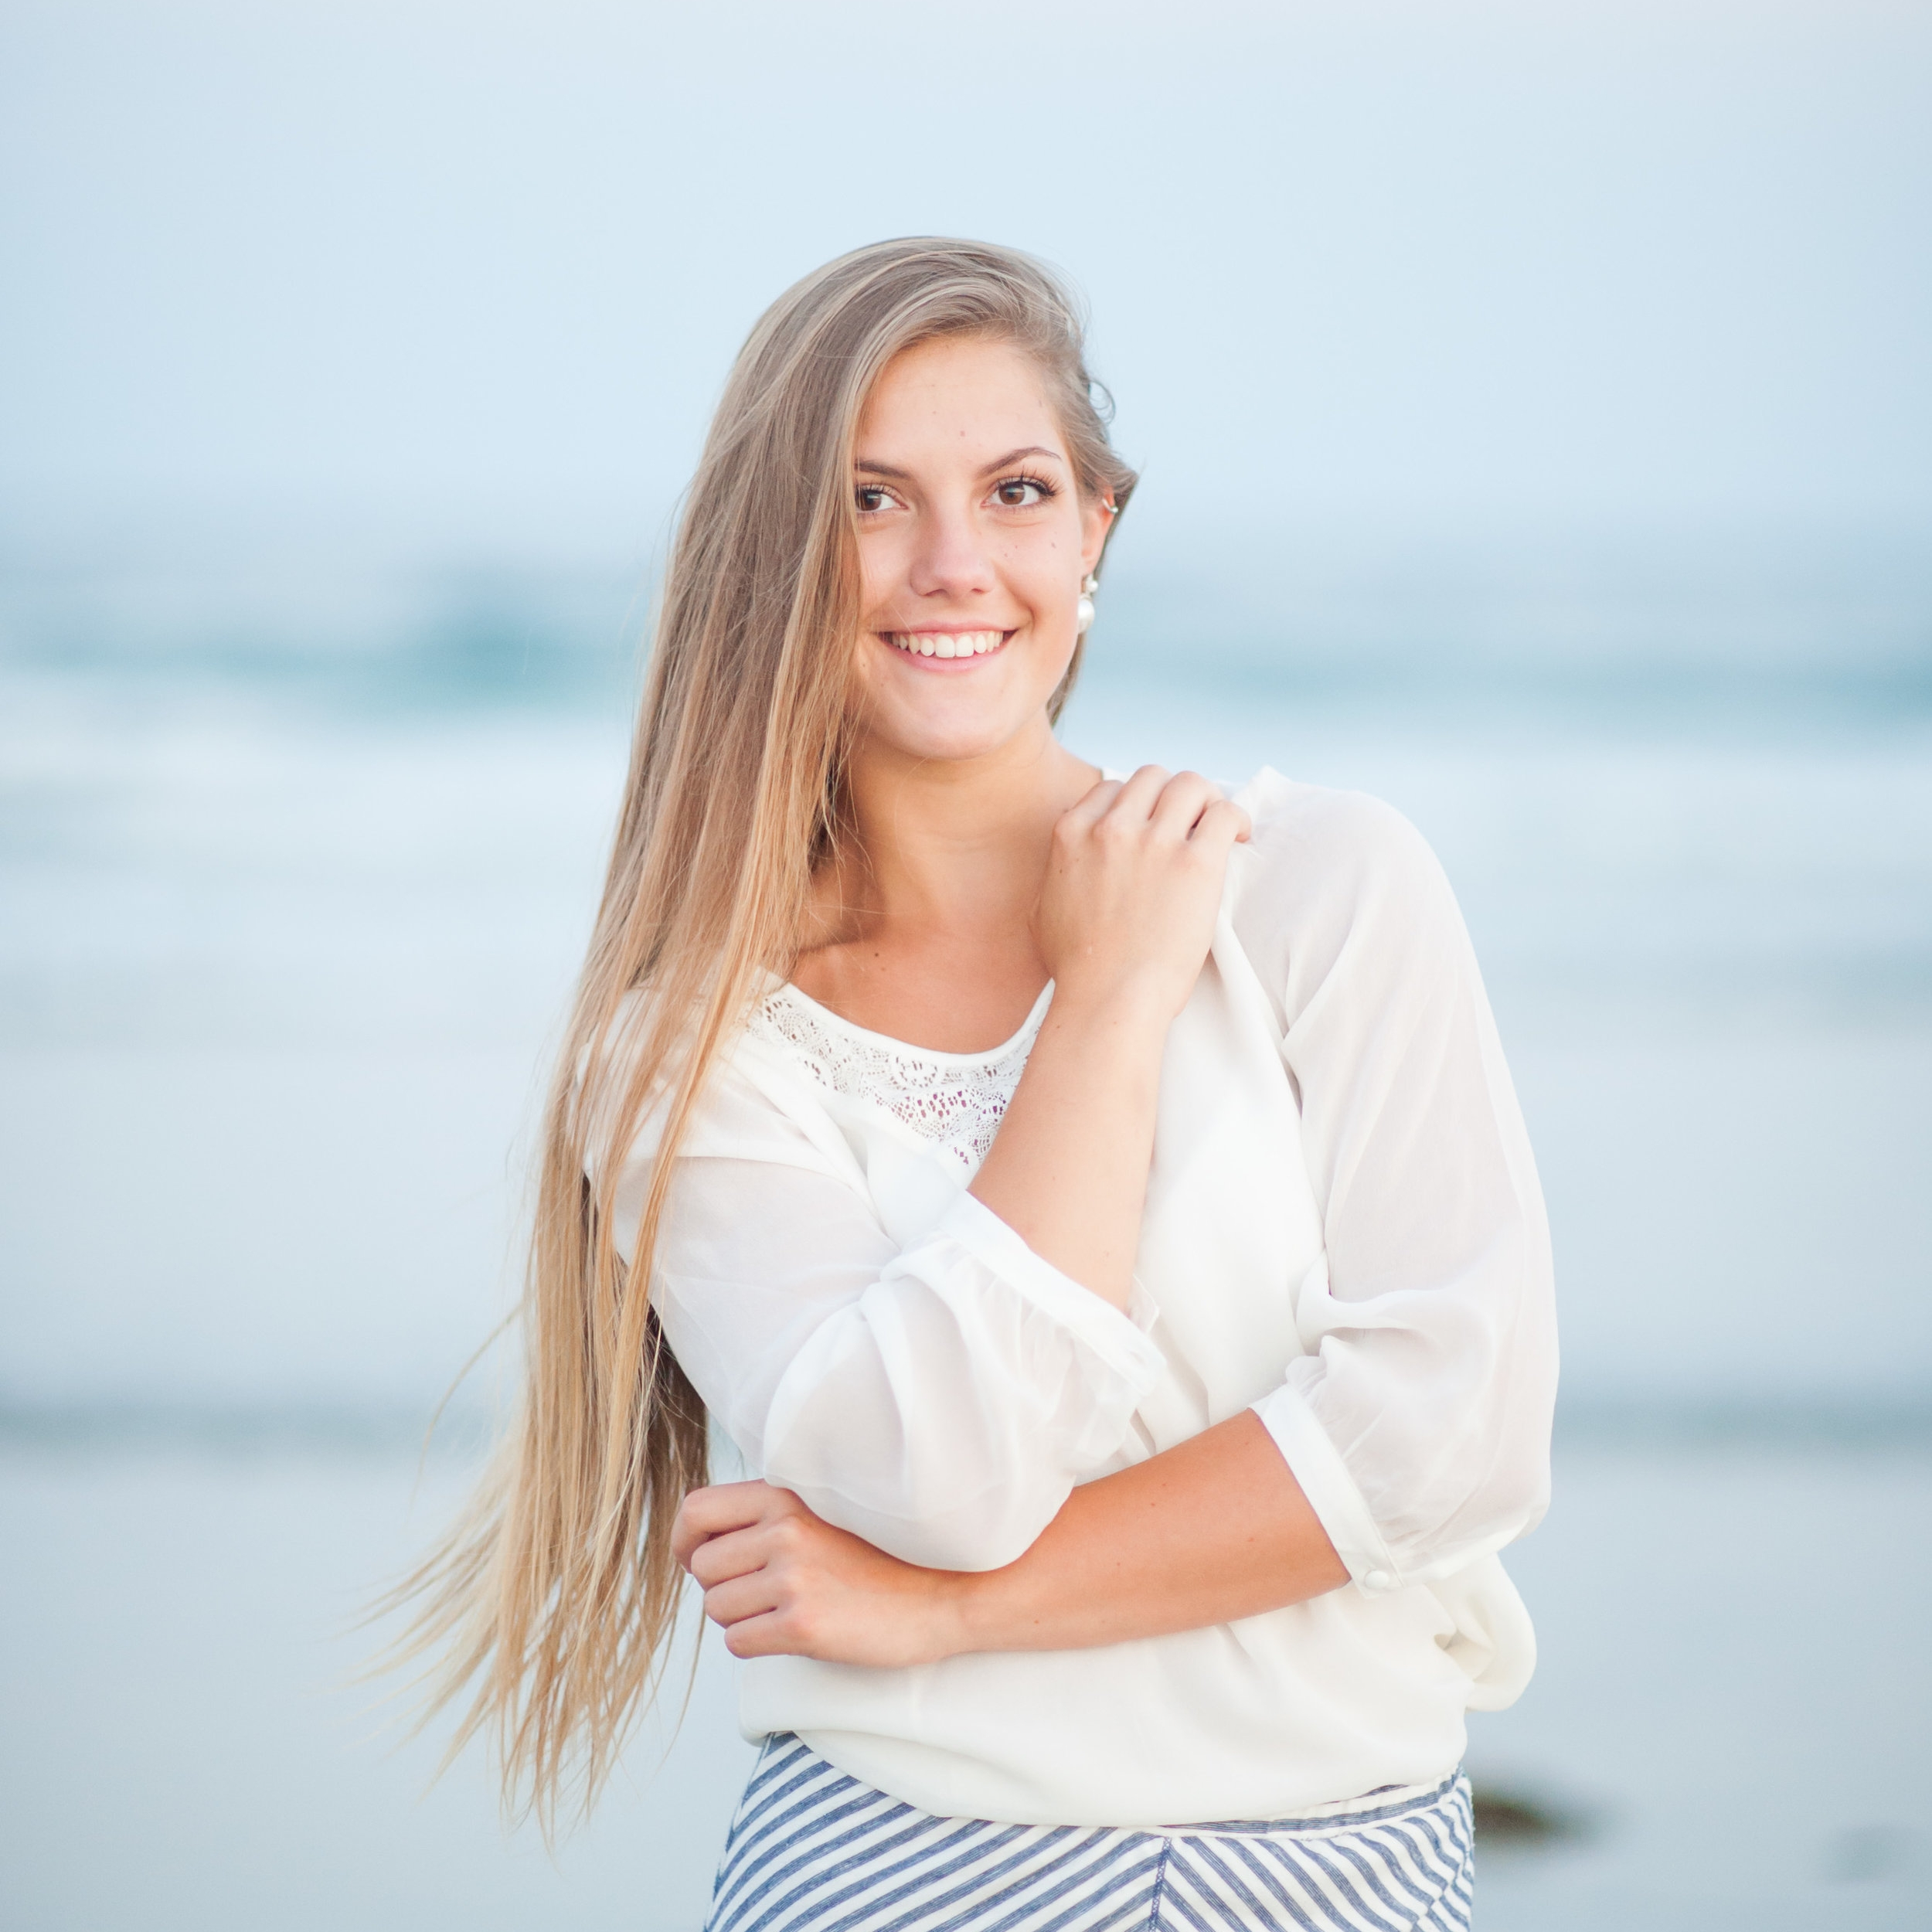 Want to see what a session with me looks like? - View Sydney's senior session by clicking below!